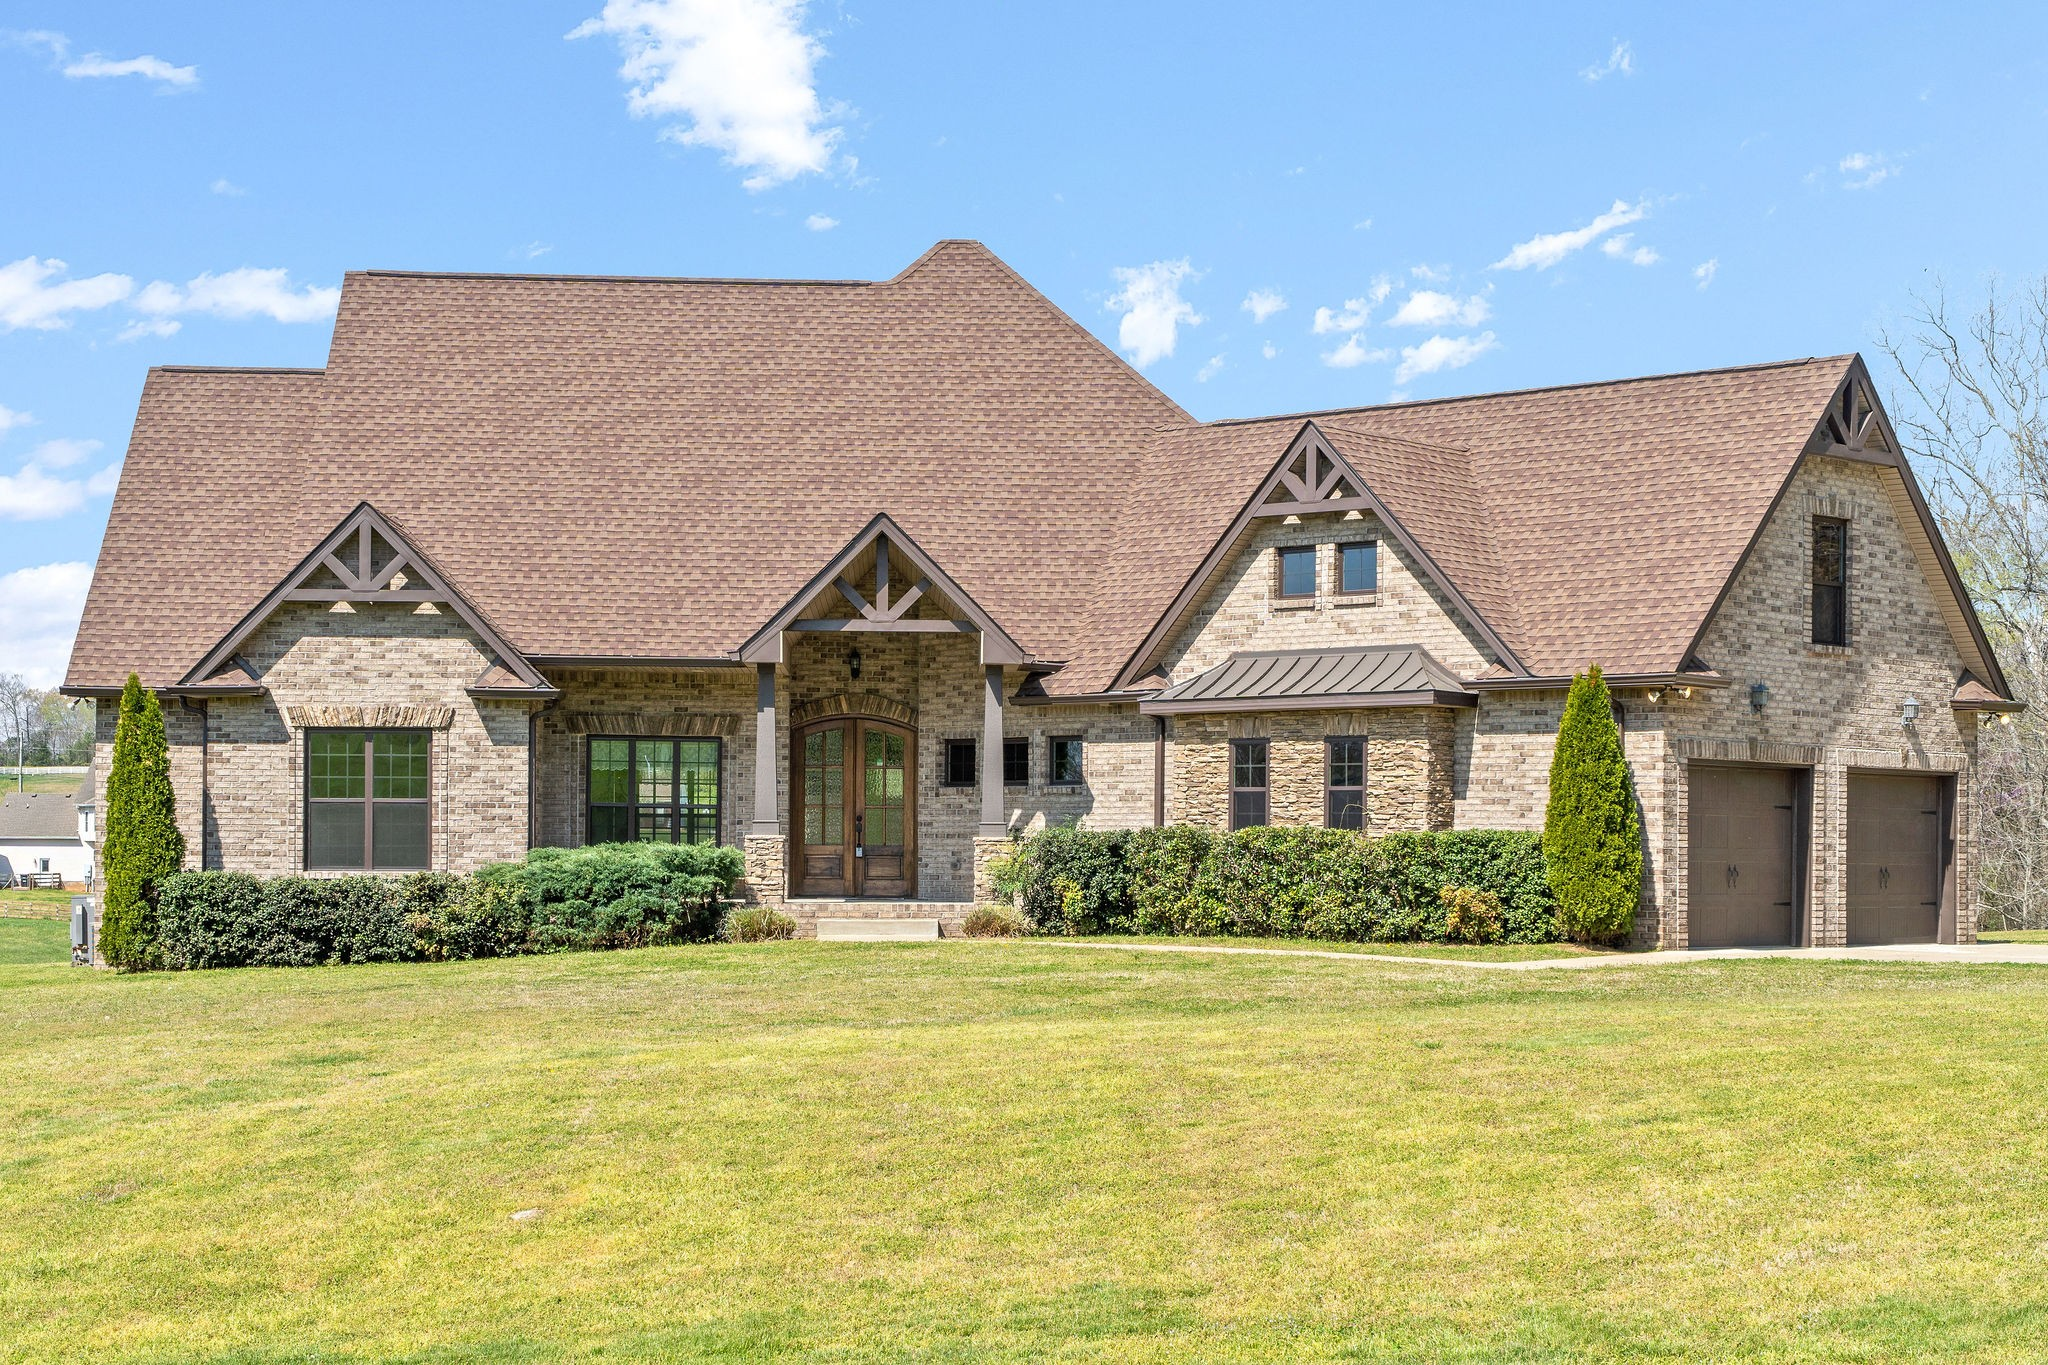 Beautiful all brick ranch home on 5 acres with a 30x40 detached garage! What more could you ask for! Open concept, finished wood flooring thru-out, huge bonus room above attached garage could be addt'l bedroom. Granite countertops in kitchen, kitchen any chef would love to have, WIC Pantry, built-in microwave above oven, gas stovetop, w/ pot  filler, so many options! Addt'l room w/ glass French doors could be used as office/hobby room, or so much more. This great home has been well maintained.